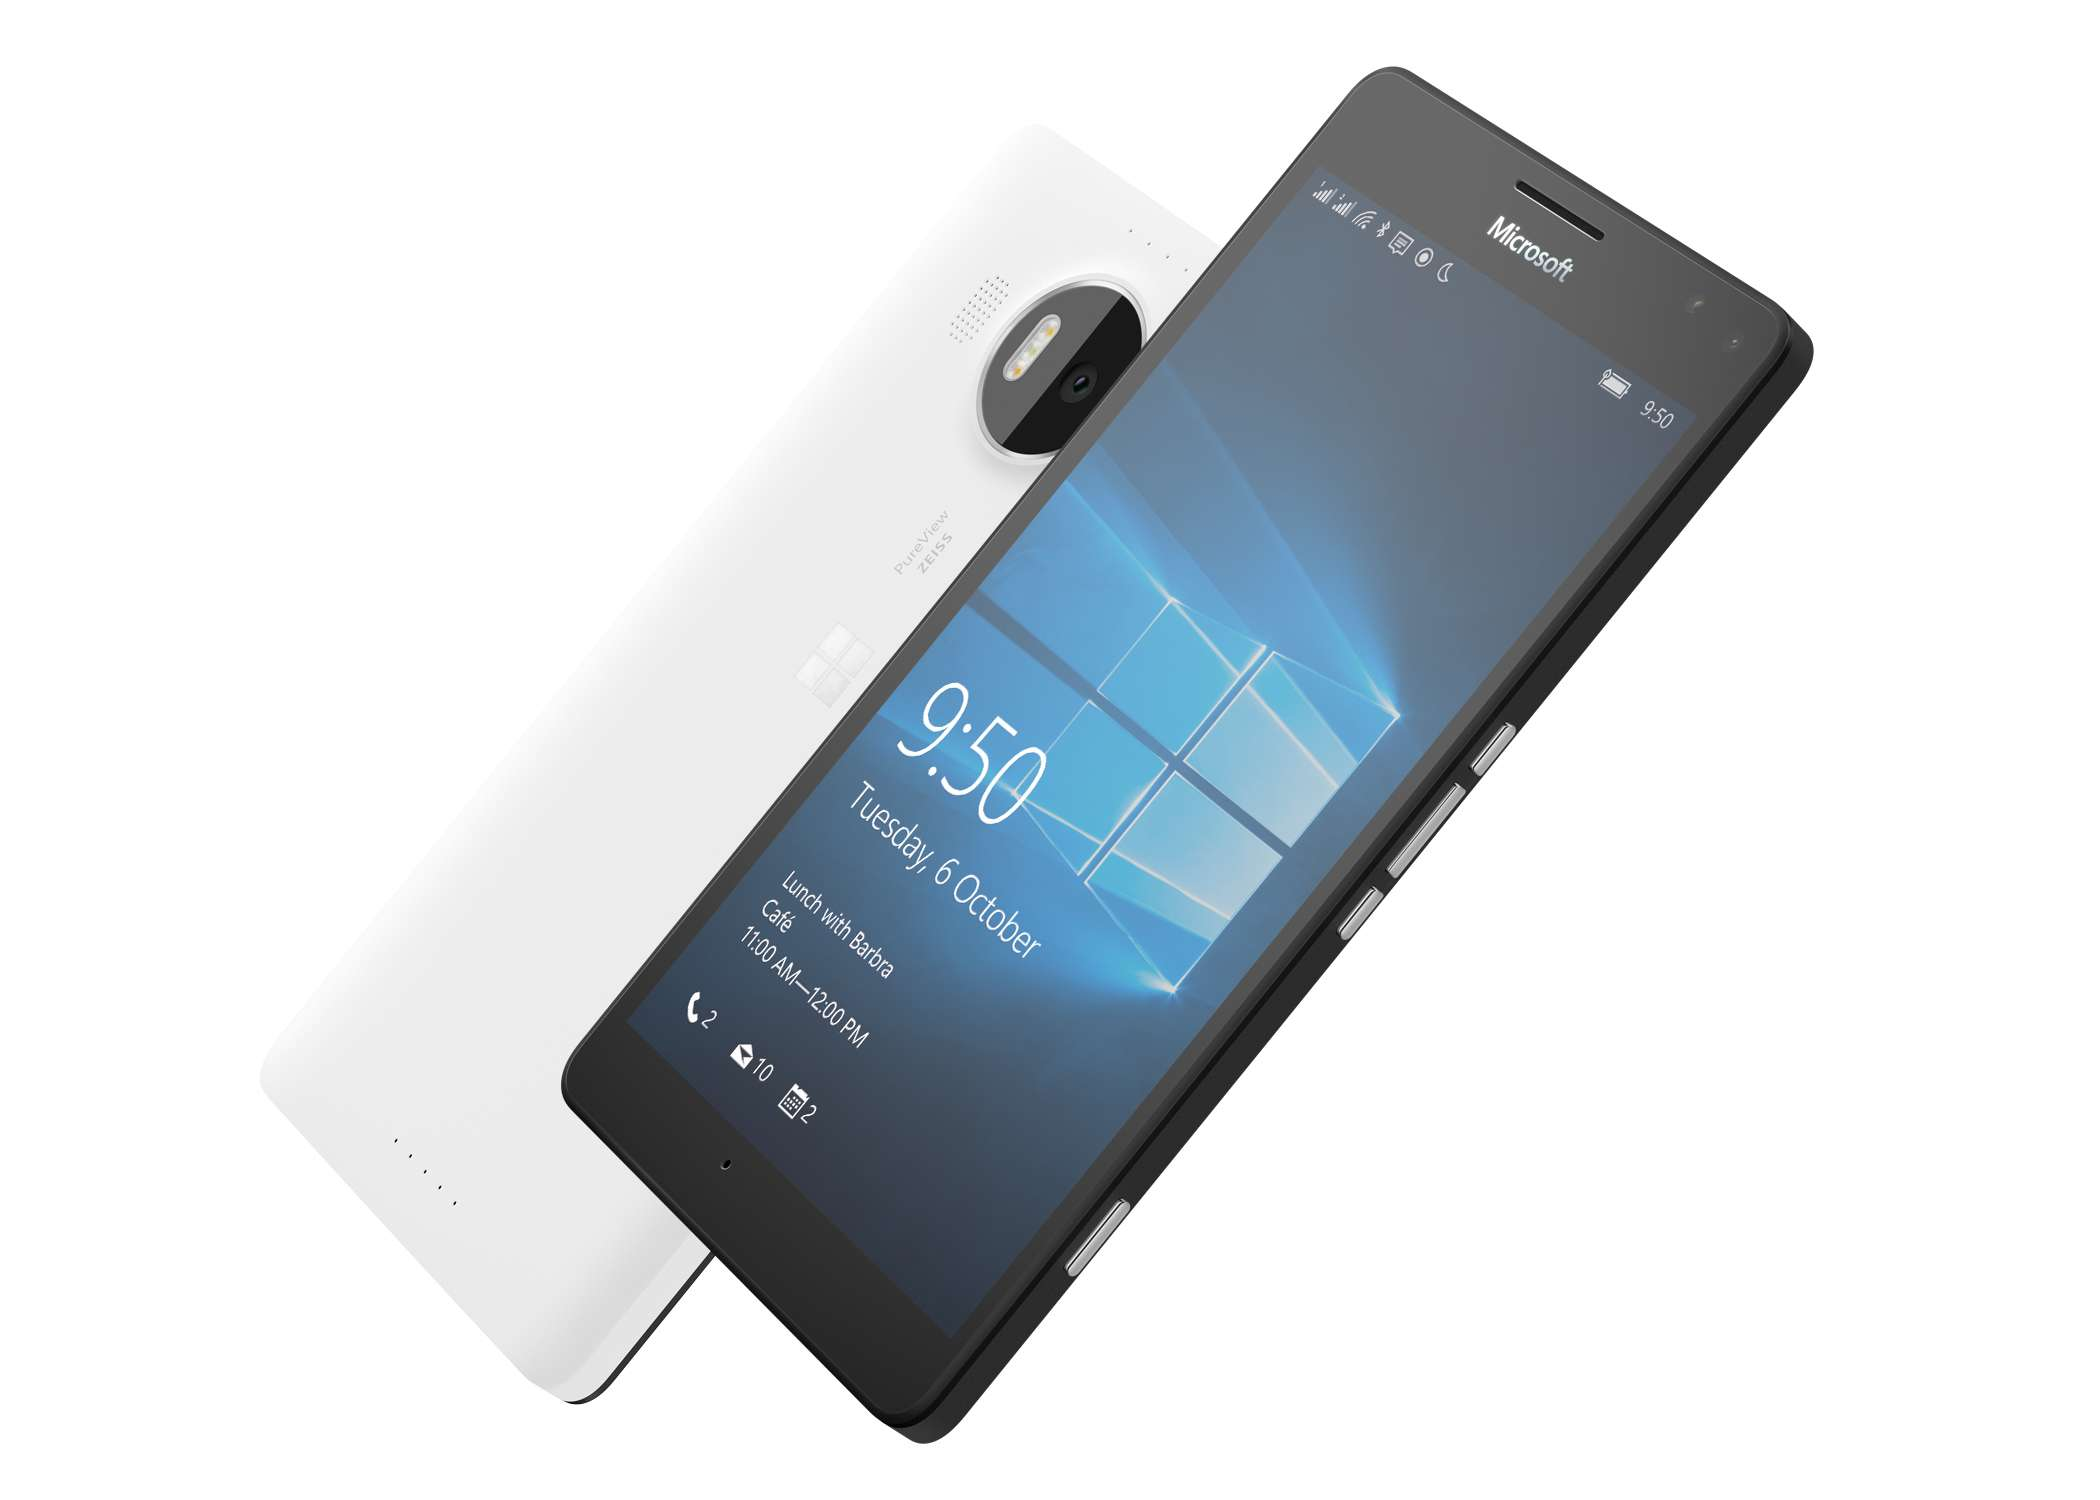 The new Lumia 950.